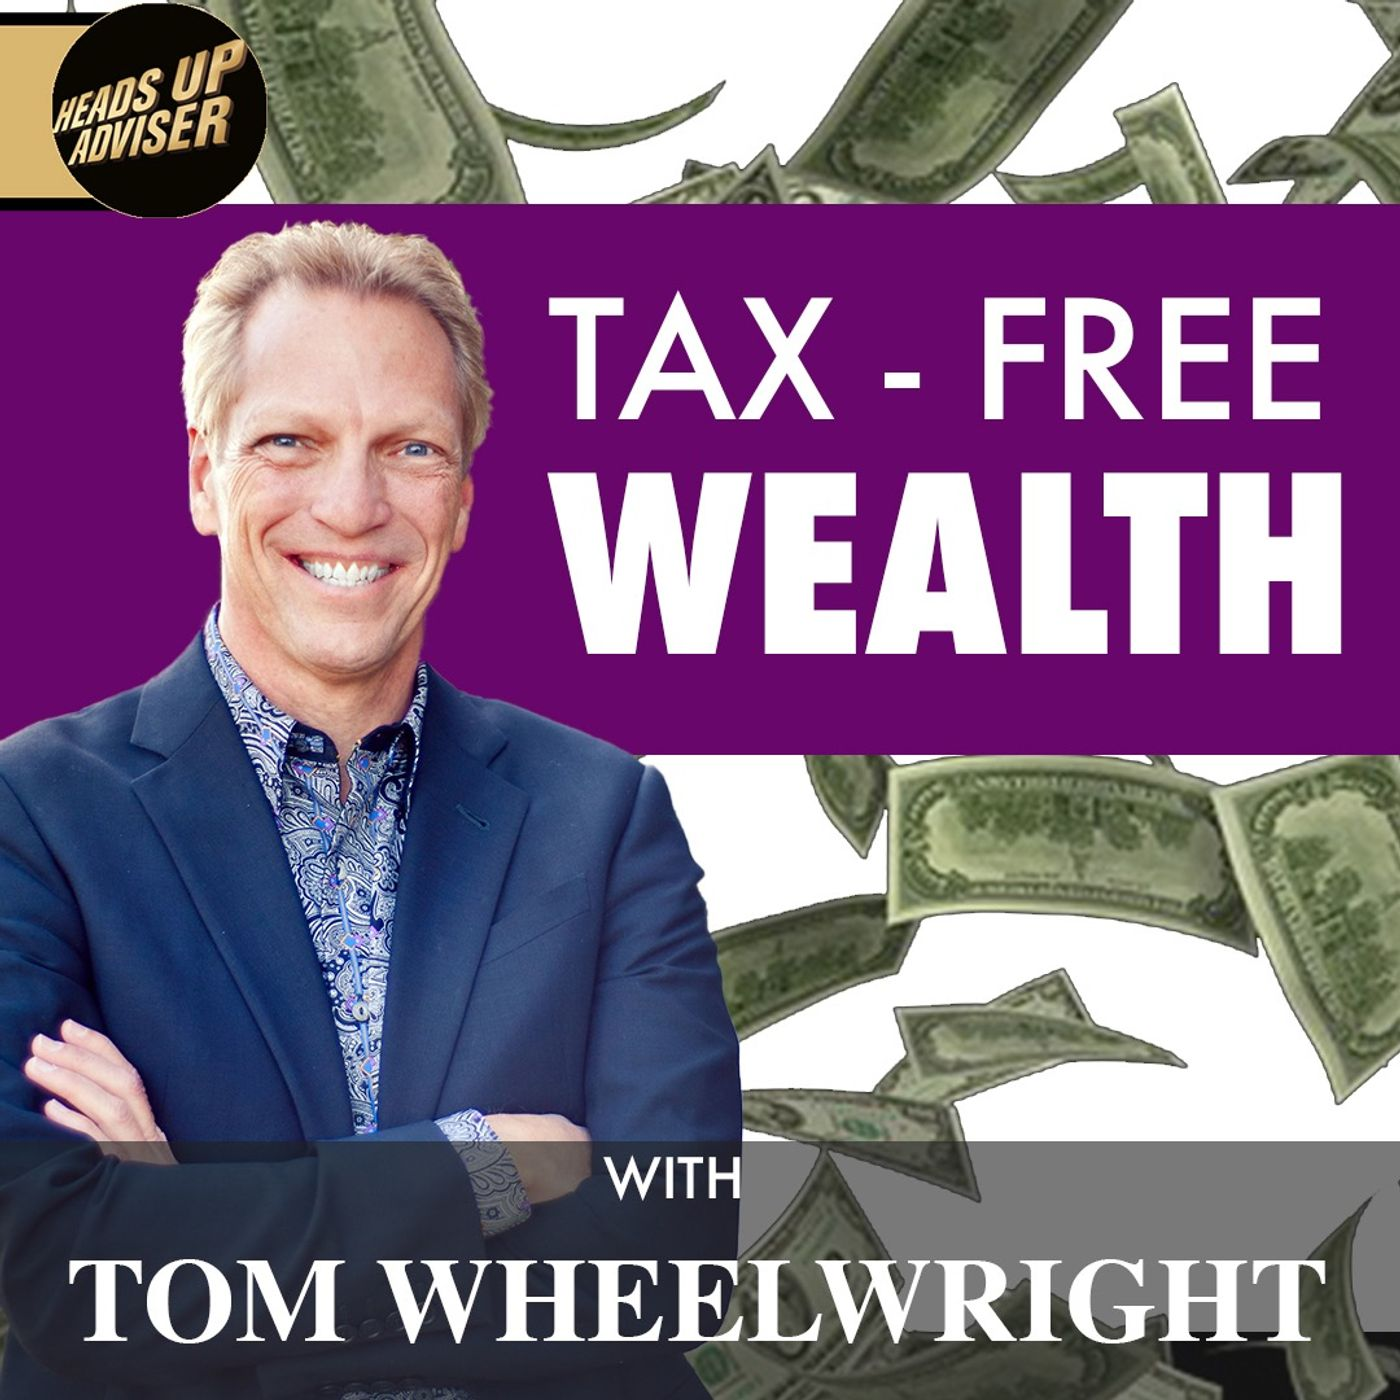 Tax-Free Wealth For Brokers With Tom Wheelwright